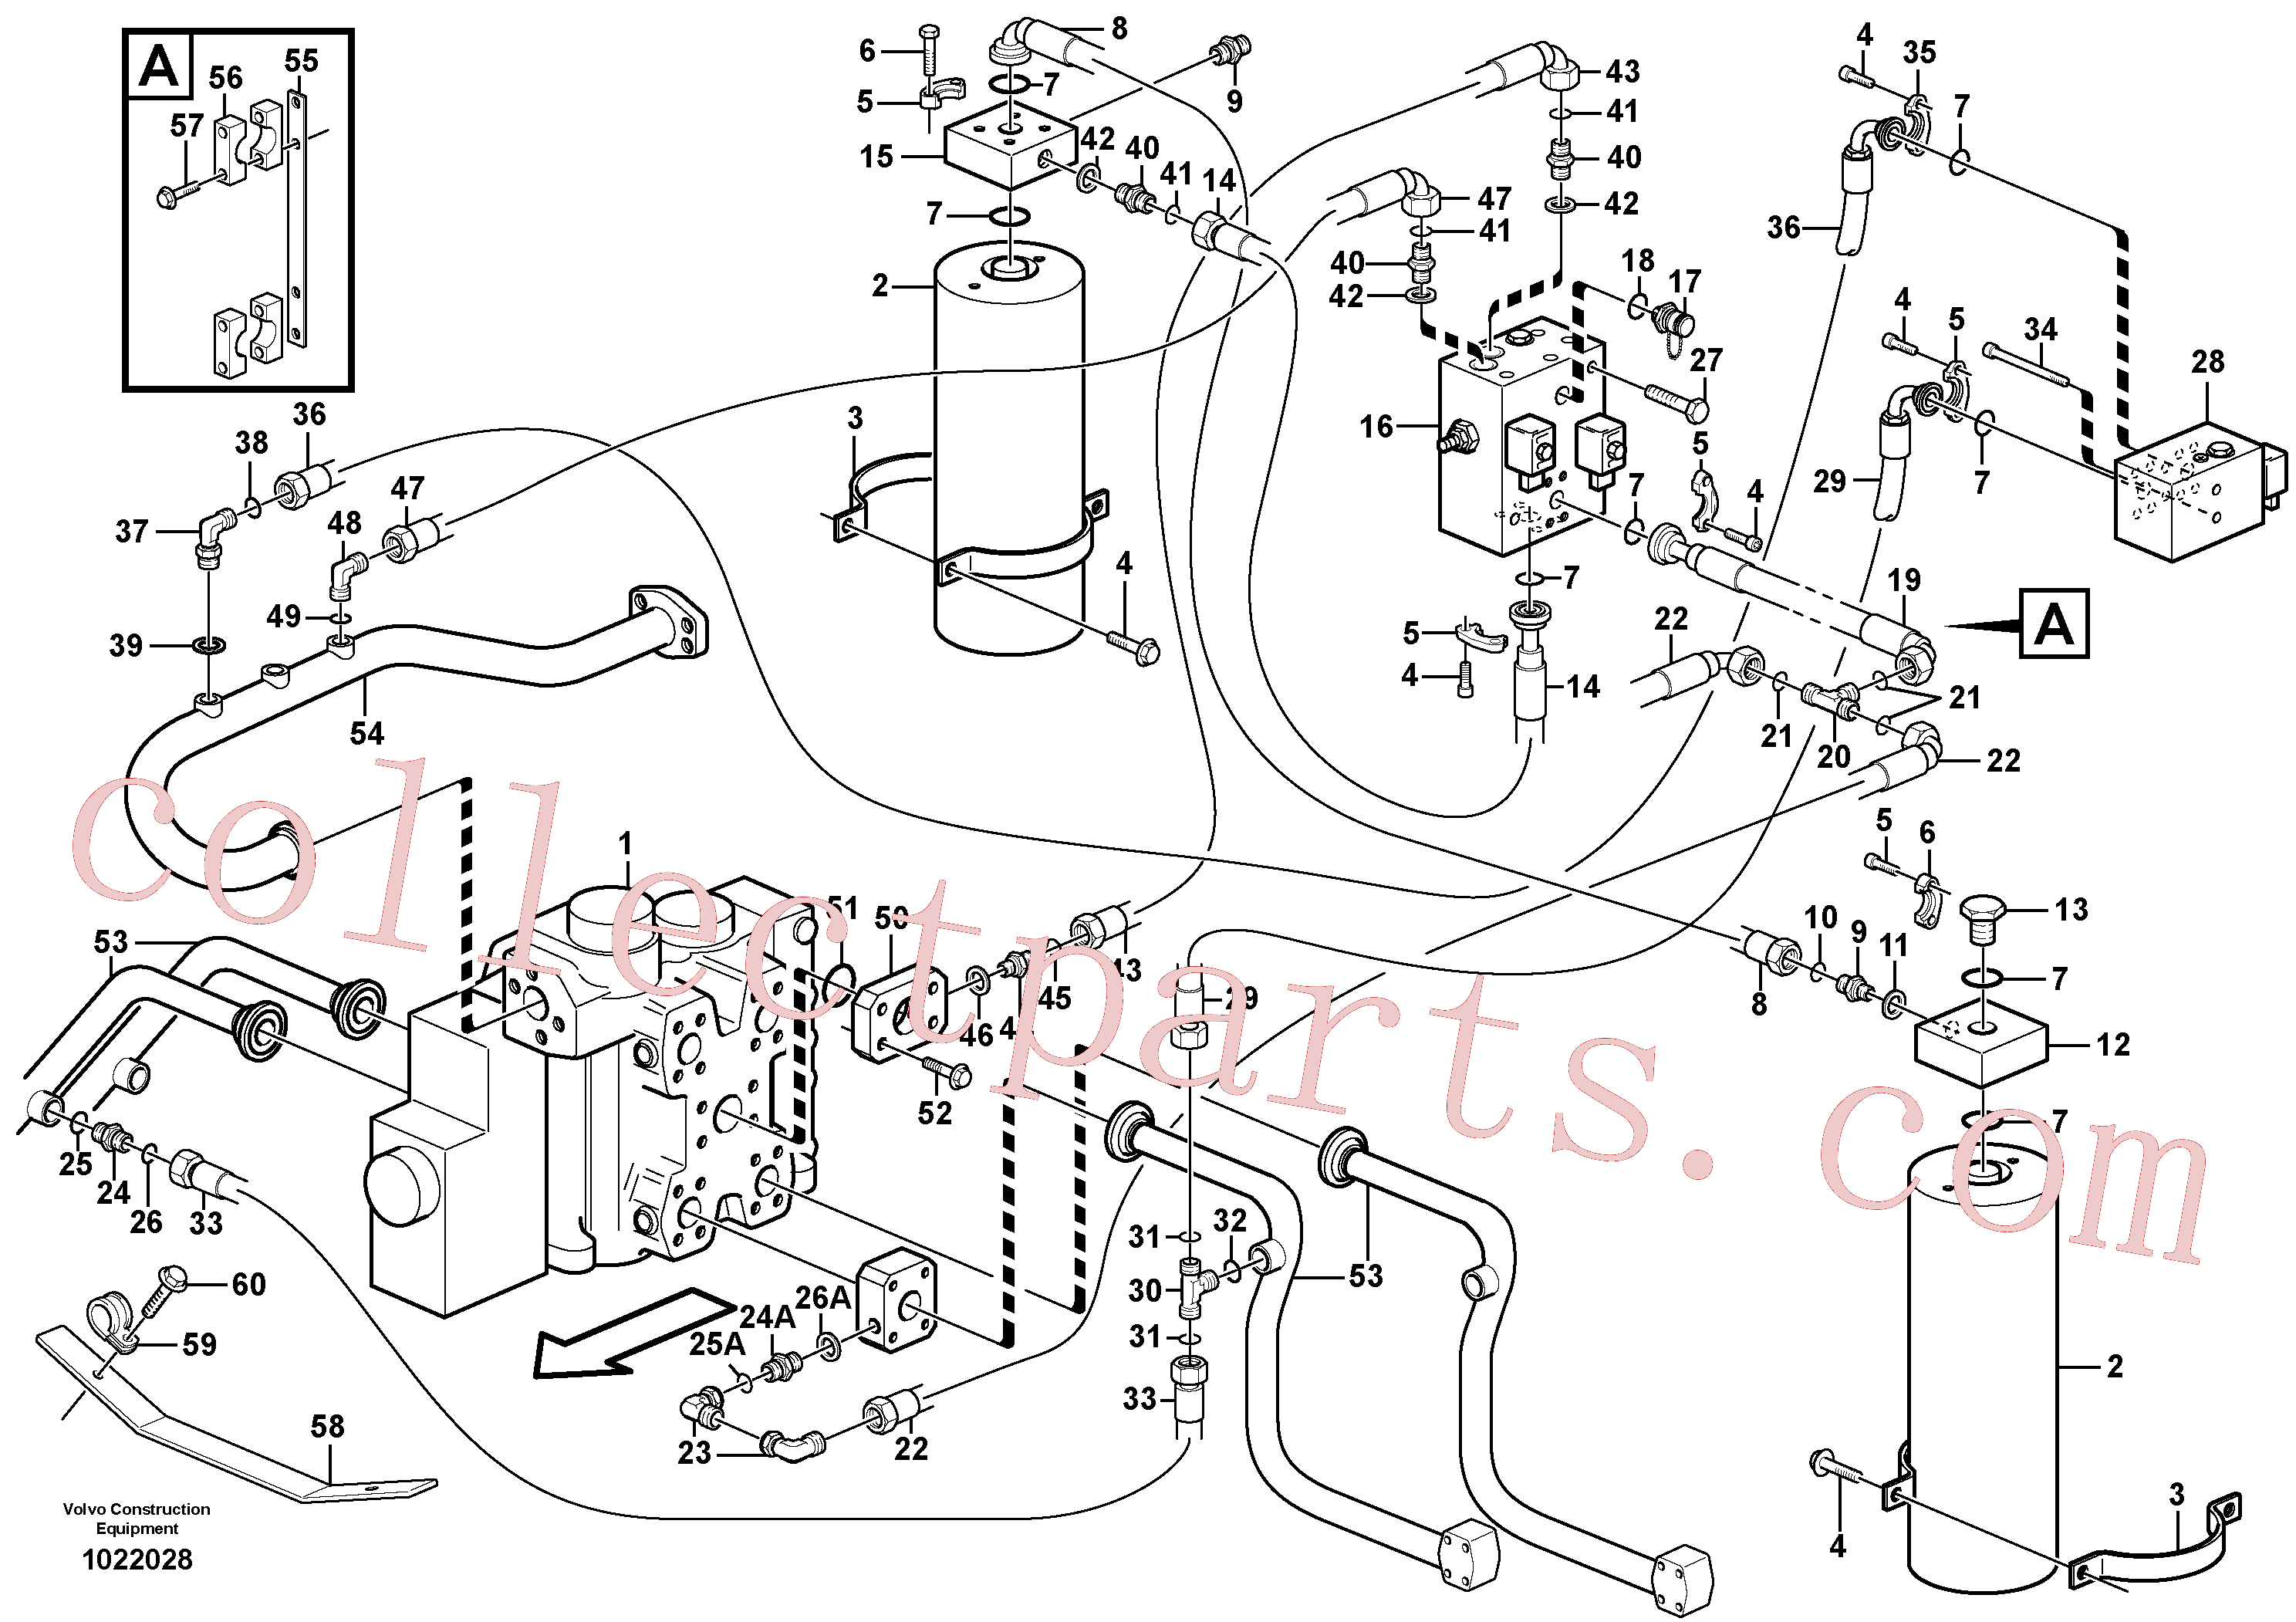 VOE11714081 for Volvo Boom suspension system(1022028 assembly)